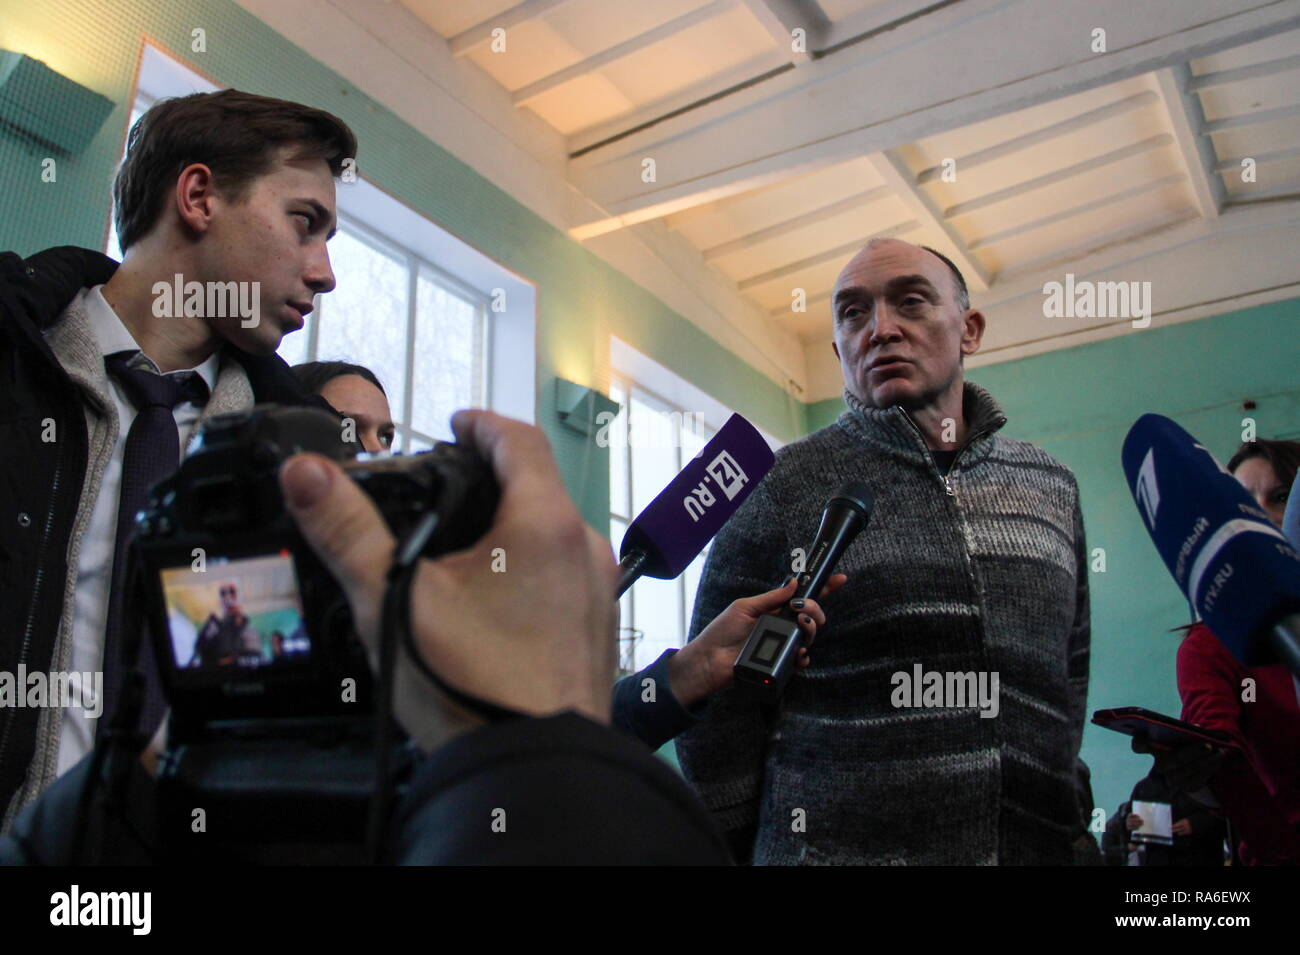 Magnitogorsk, Russia. 02nd Jan, 2019. MAGNITOGORSK, RUSSIA - JANUARY 2, 2019: Chelyabinsk Region Governor Boris Dubrovsky (back) interviewed at secondary school No 14 near the site of an apartment block collapse in Magnitogorsk. On December 31, 2018, at 4:00am, a domestic gas explosion caused a partial collapse of the residential building at 164 Prospekt Karla Marksa Street killing 21 people and leaving dozens missing. Ilya Moskovets/TASS Credit: ITAR-TASS News Agency/Alamy Live News - Stock Image